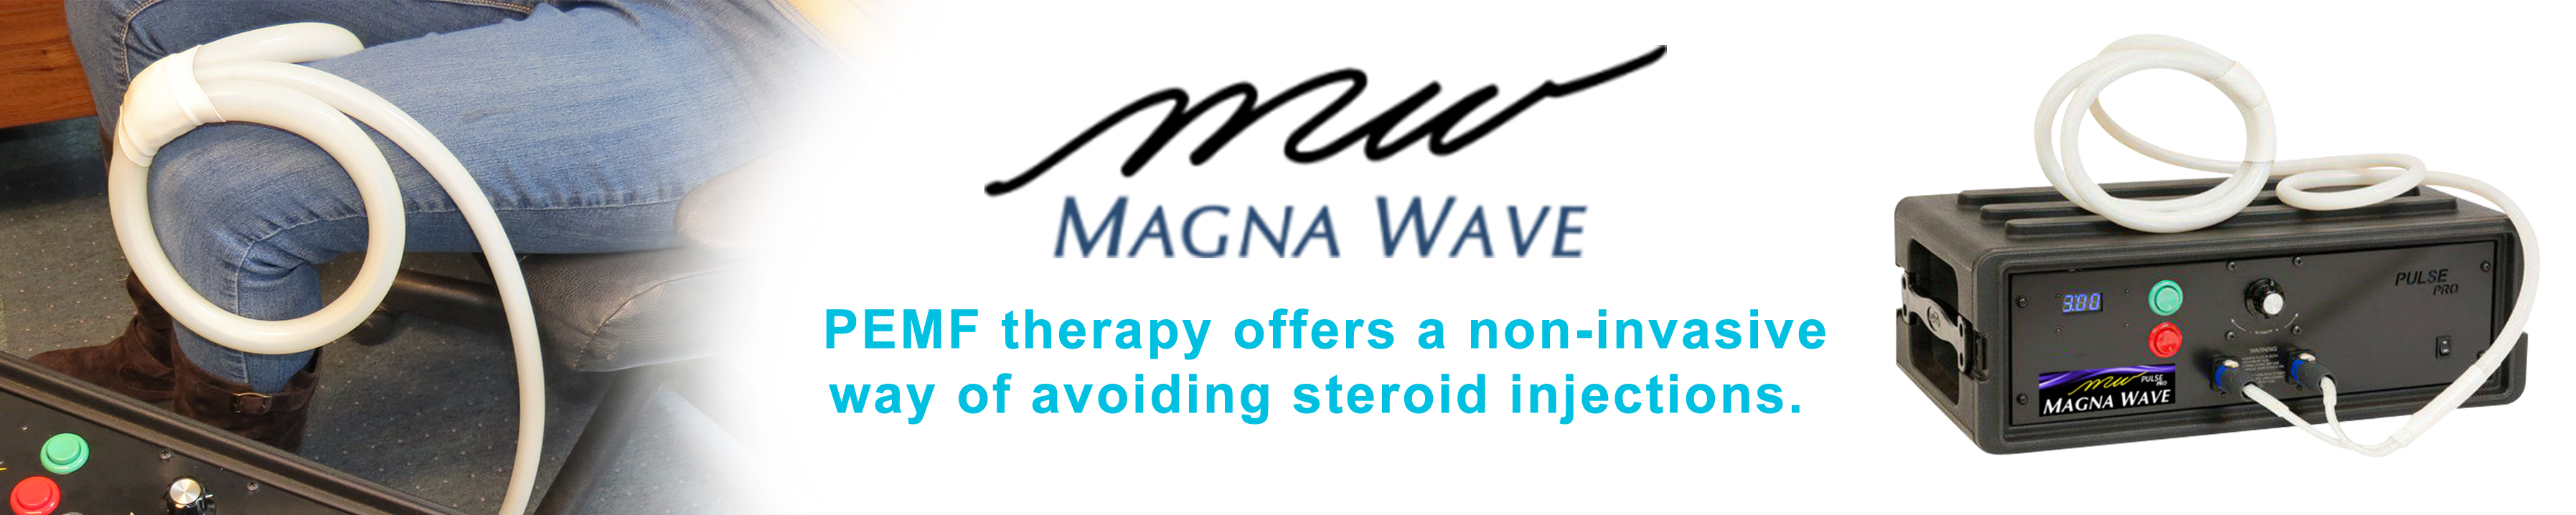 Avoiding Steroid Injections with PEMF from Magna Wave